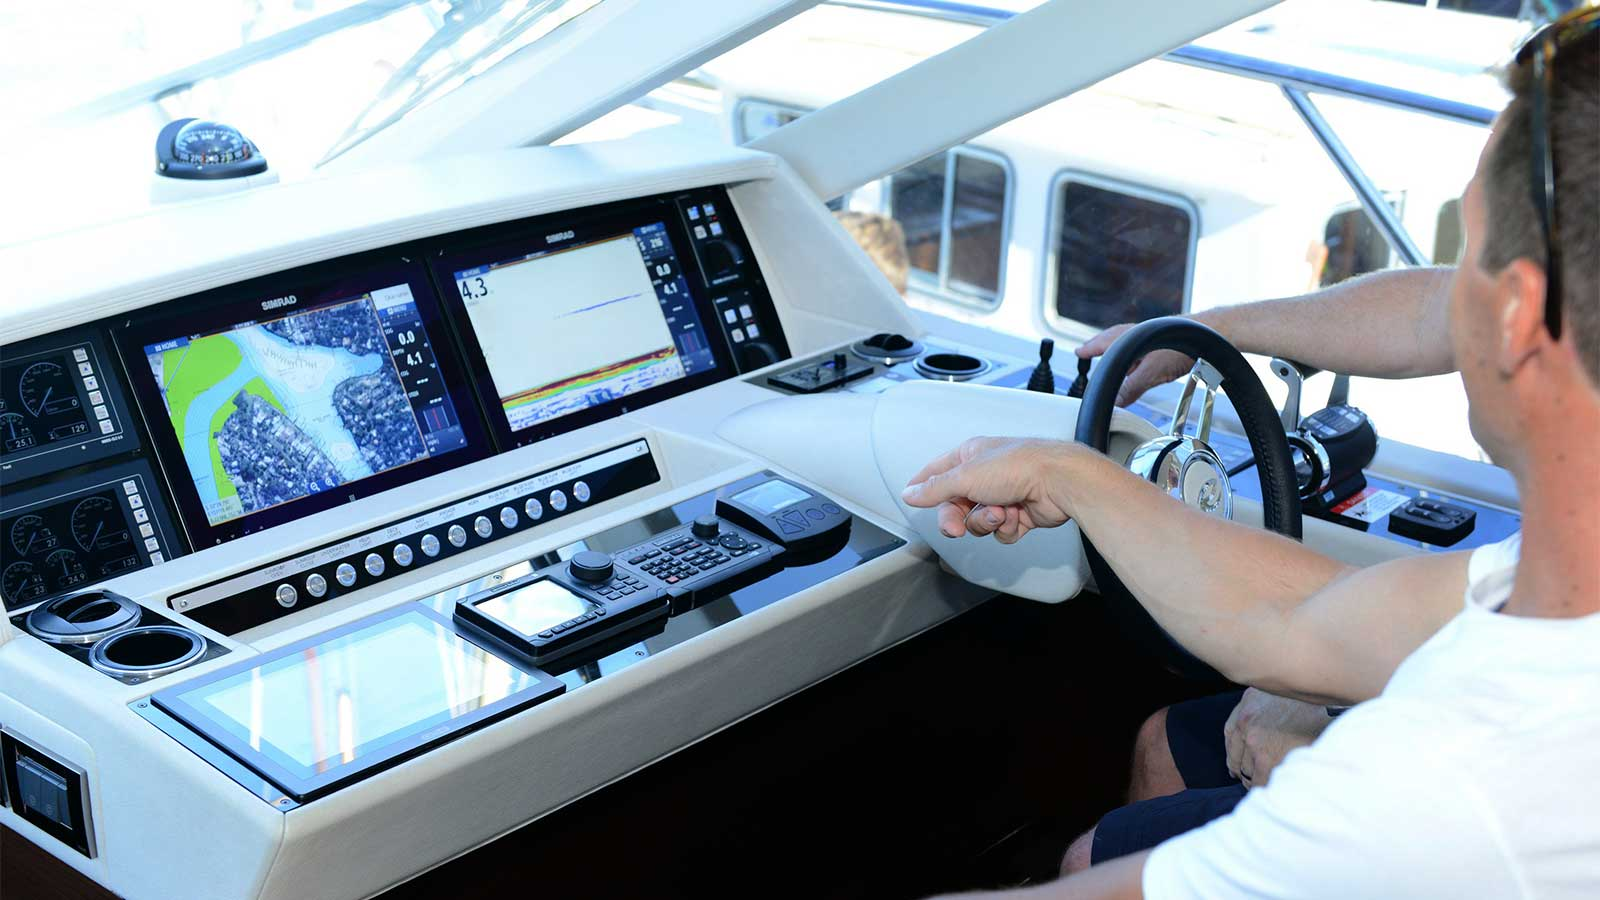 Sydney Vessel Management conducts driver training on their boats and yachts in Sydney, Australia